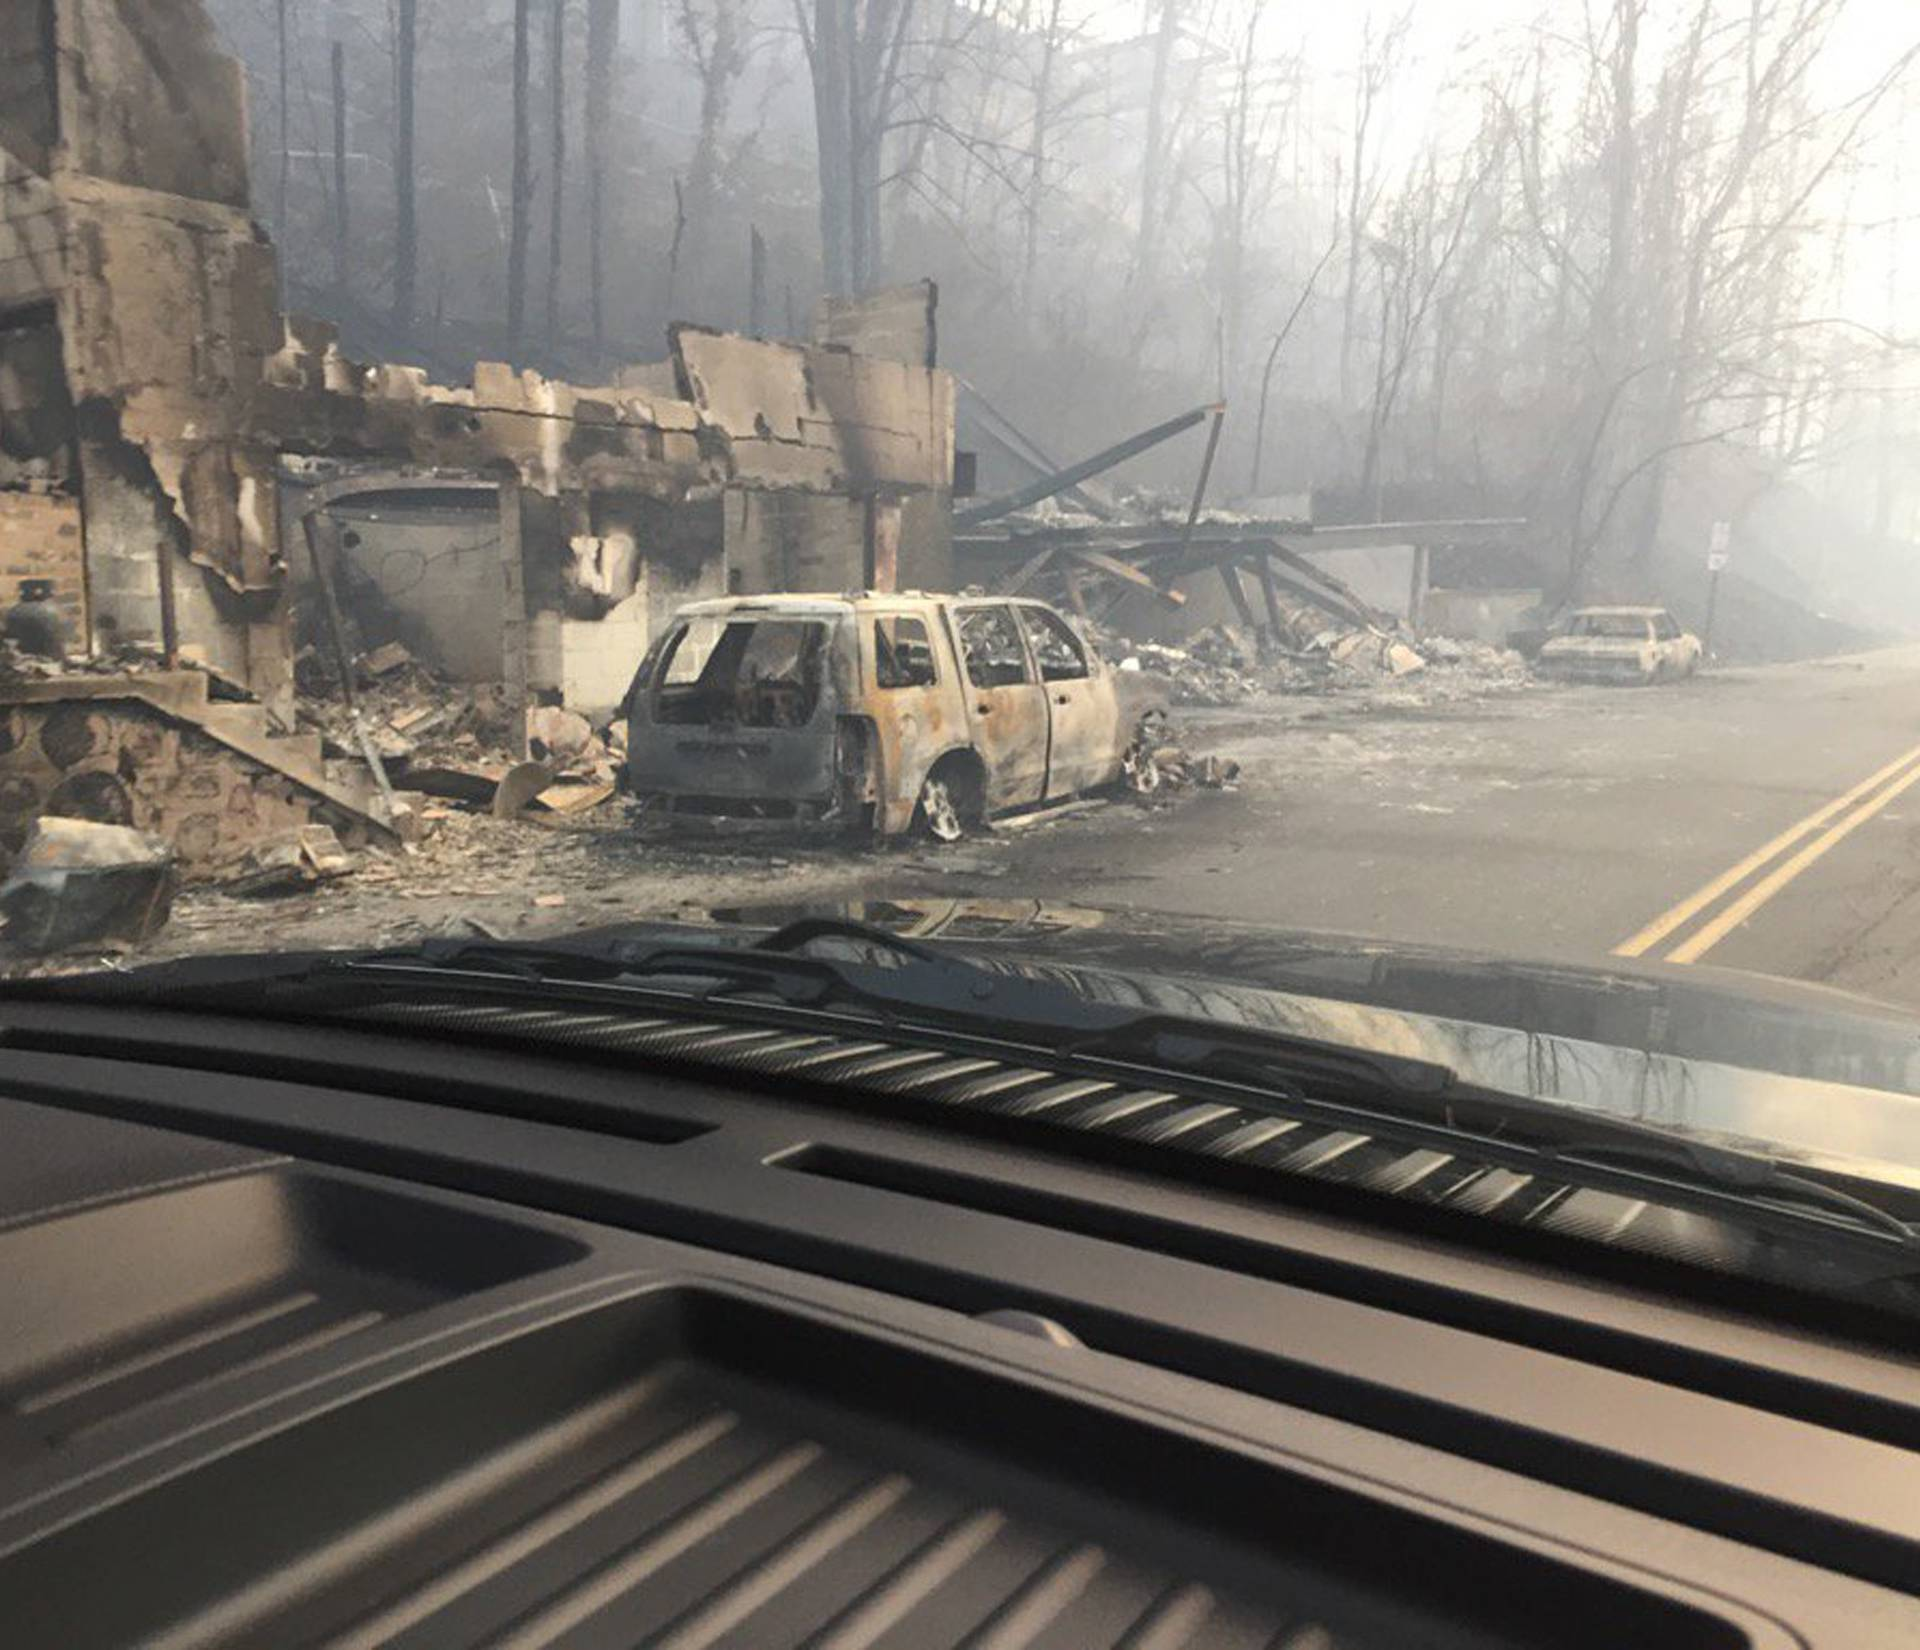 Burned buildings and cars aftermath of wildfire in Gatlinburg Tennessee